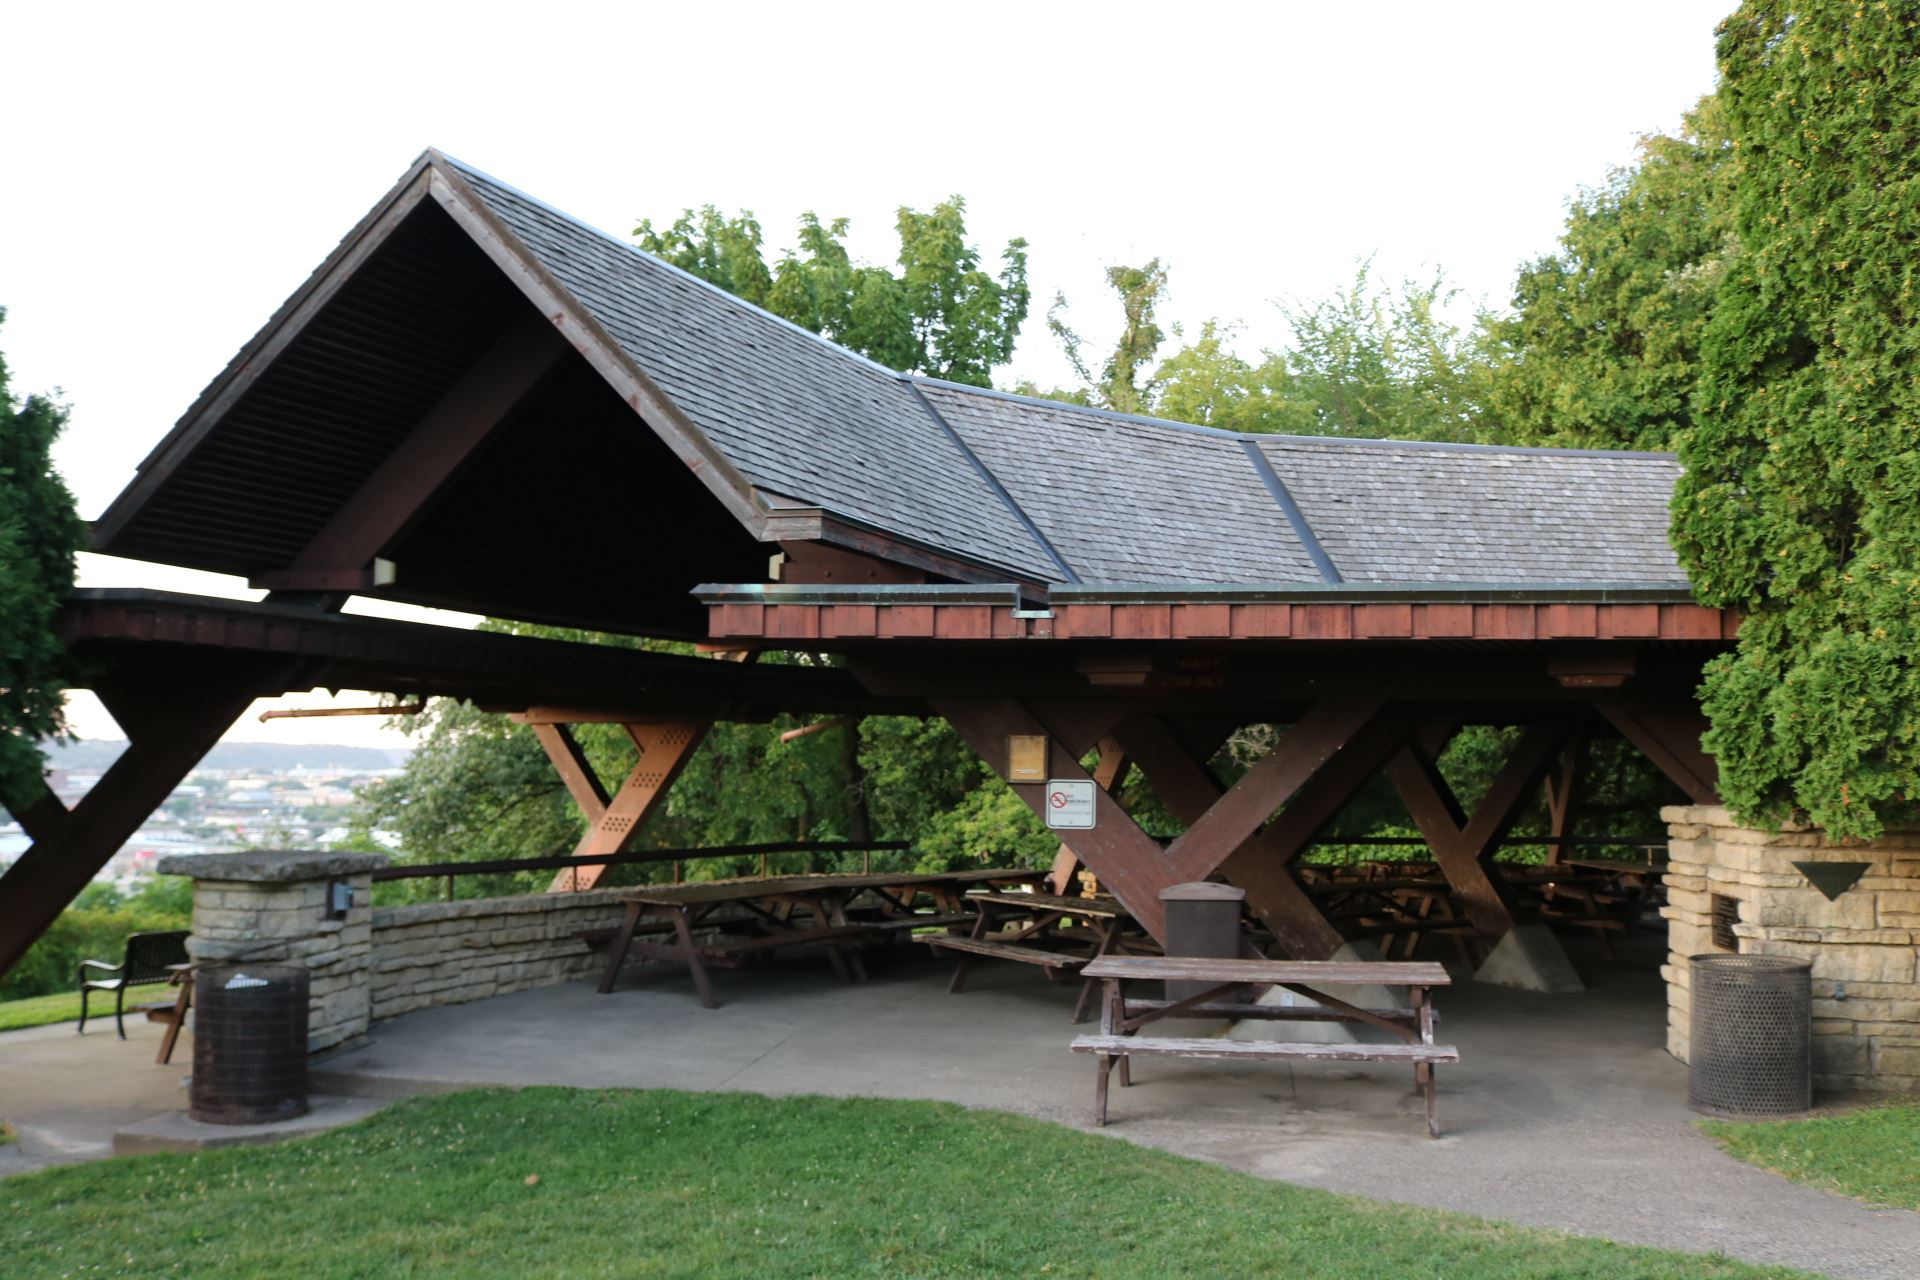 Bennett Pavilion seating: 126 people; $115.00. Handicapped accessible, 15 amp electricity, barbecue